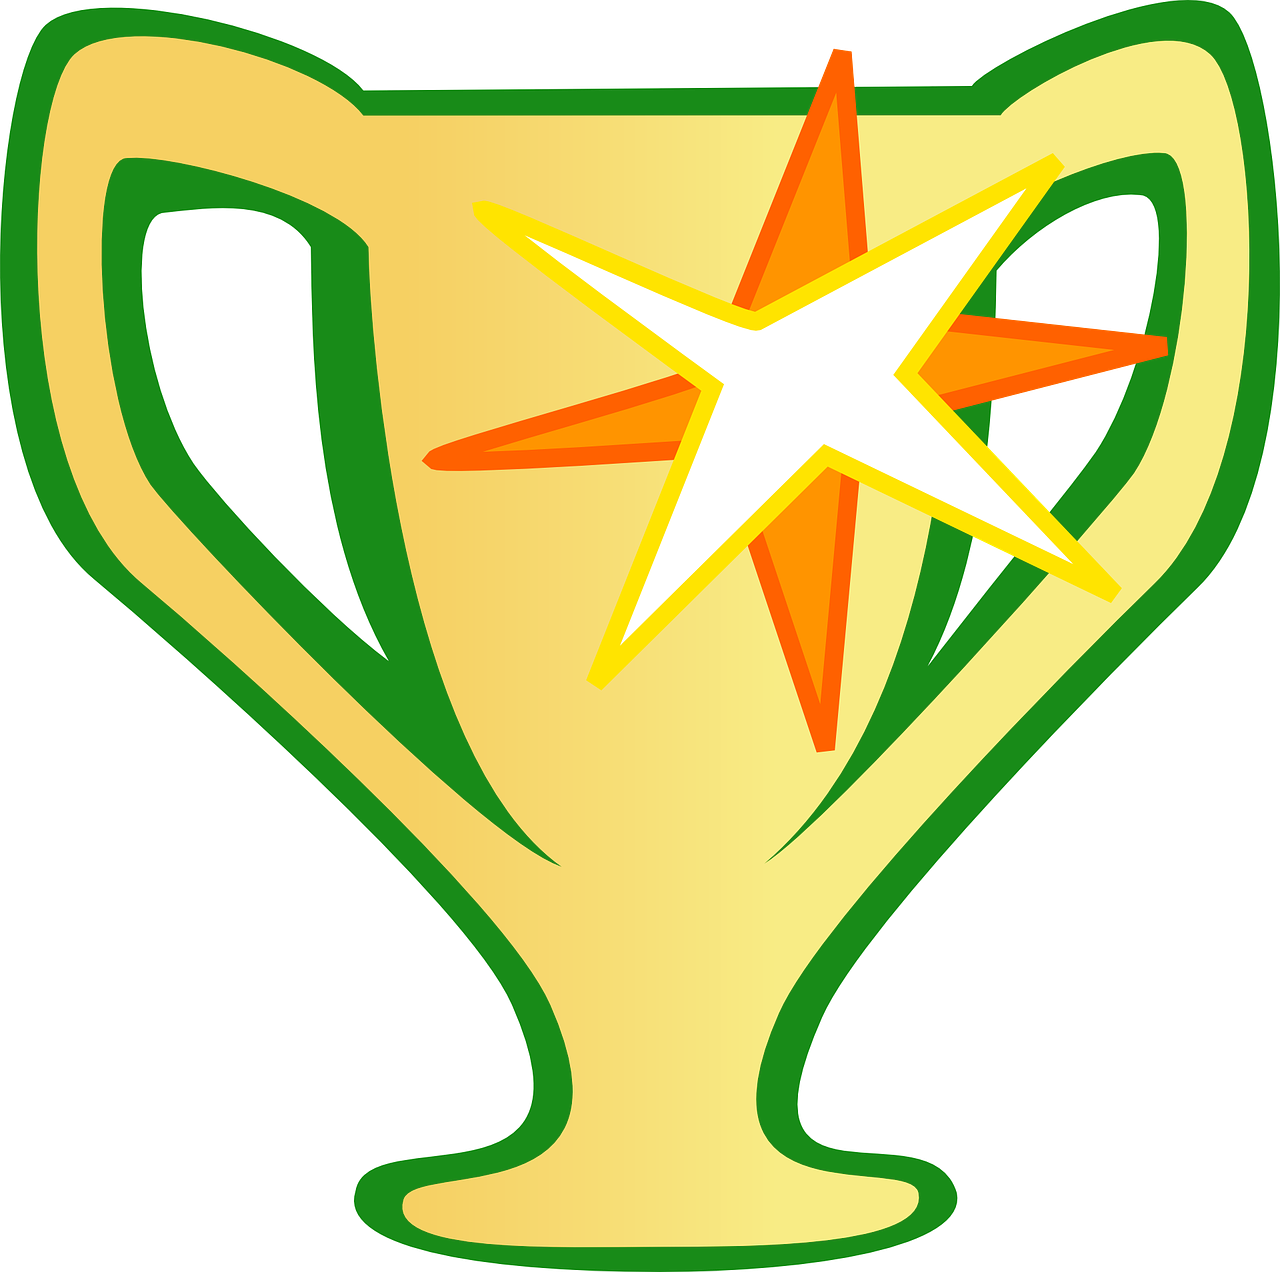 trophy-27825_1280.png